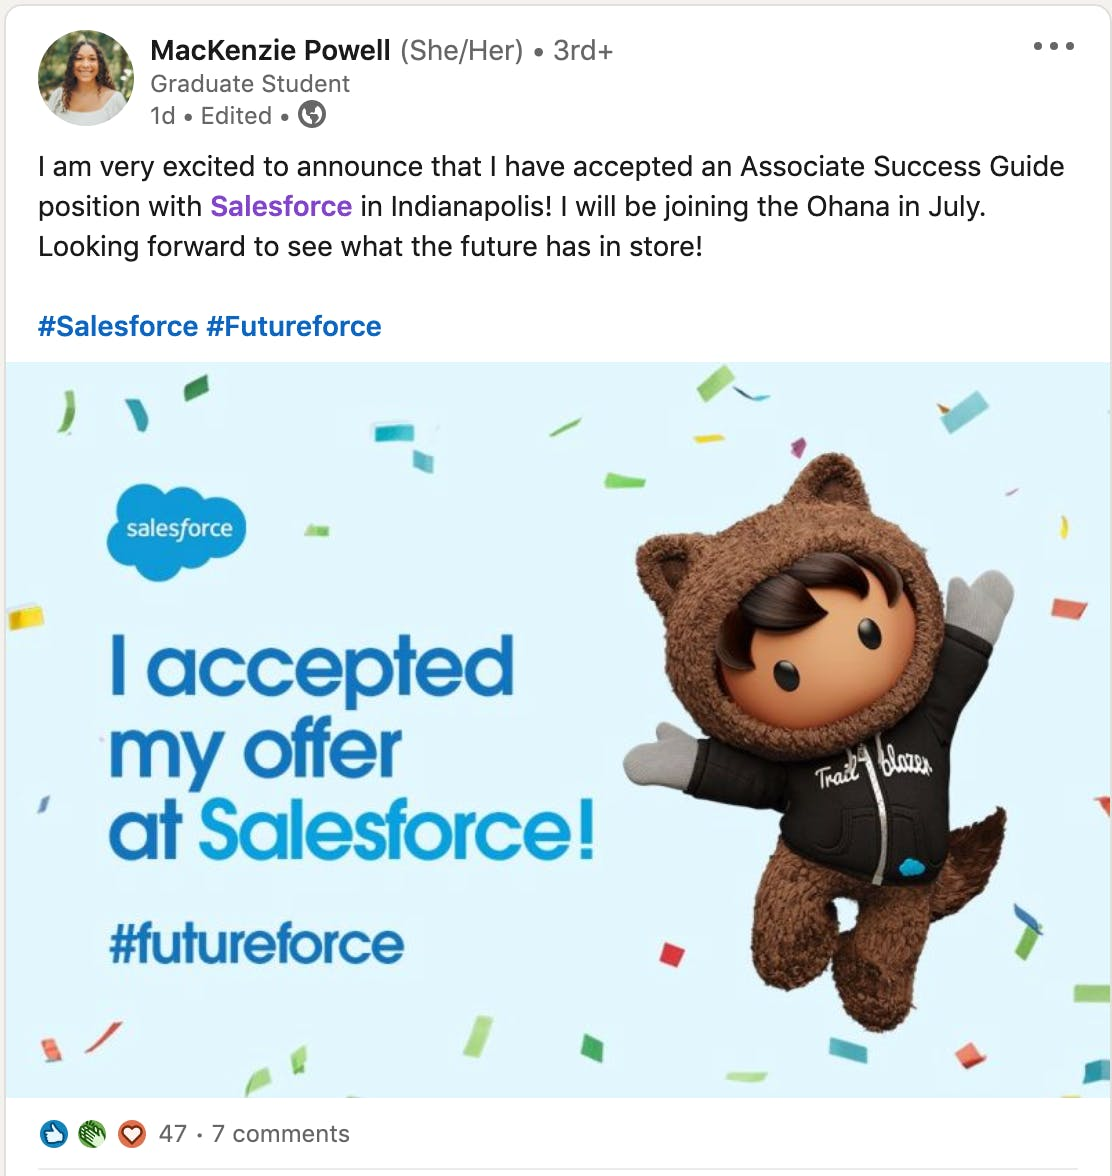 An example of how an employee's excitement around joining a particular company can help portray the brand in a positive light, as well as how a company can facilitate such posts by providing branded social imagery.